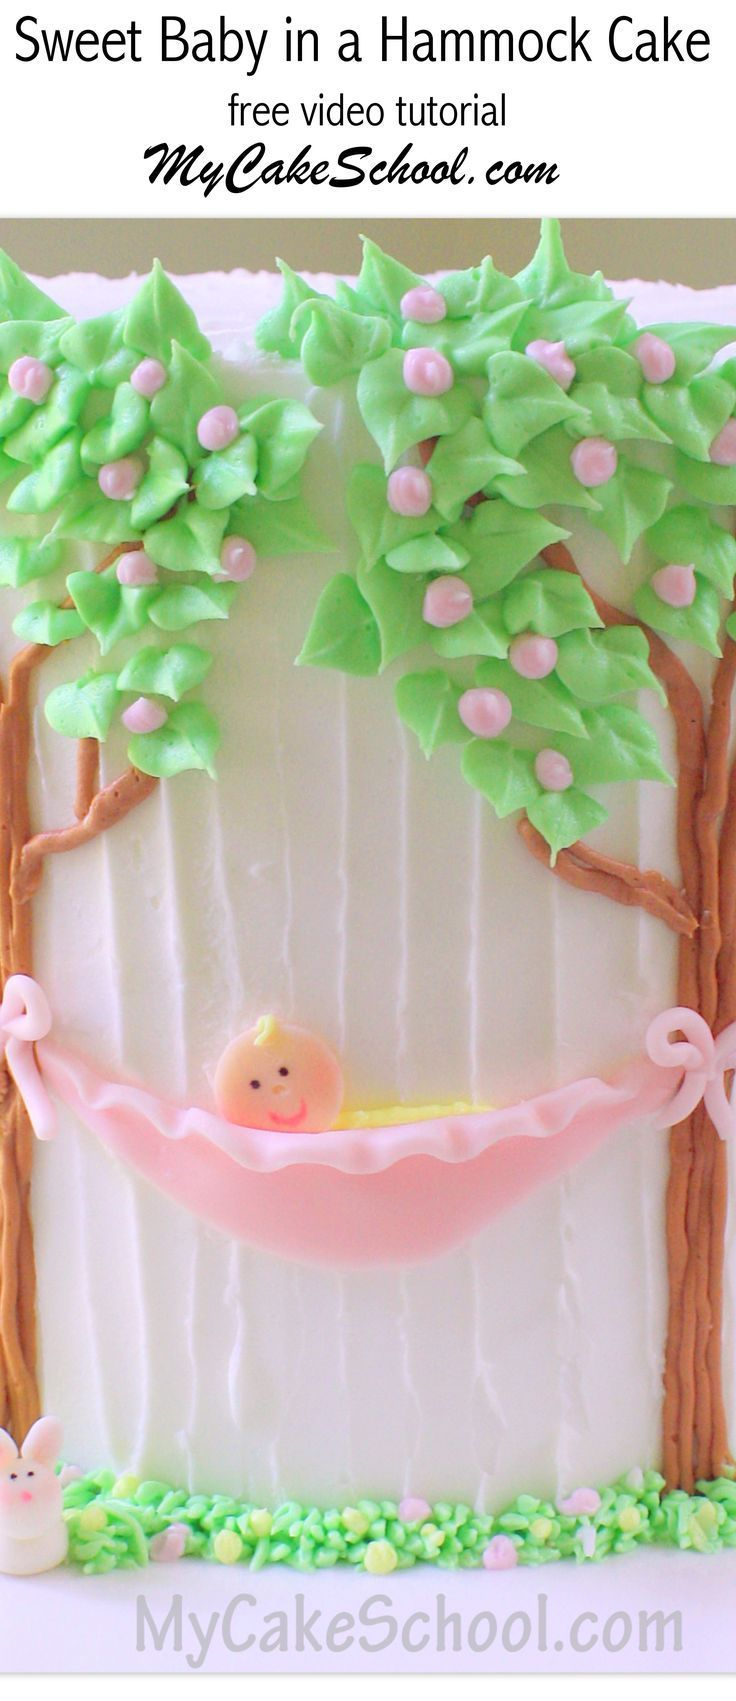 ADORABLE Baby in a Hammock Cake Design by MyCakeSchool.com! Free Cake Decorating Video! My Cake School Online Cake Tutorials, Cake Videos, Cake Recipes, and More!  #hammockcake #babyshowercake #caketutorials #mycakeschool